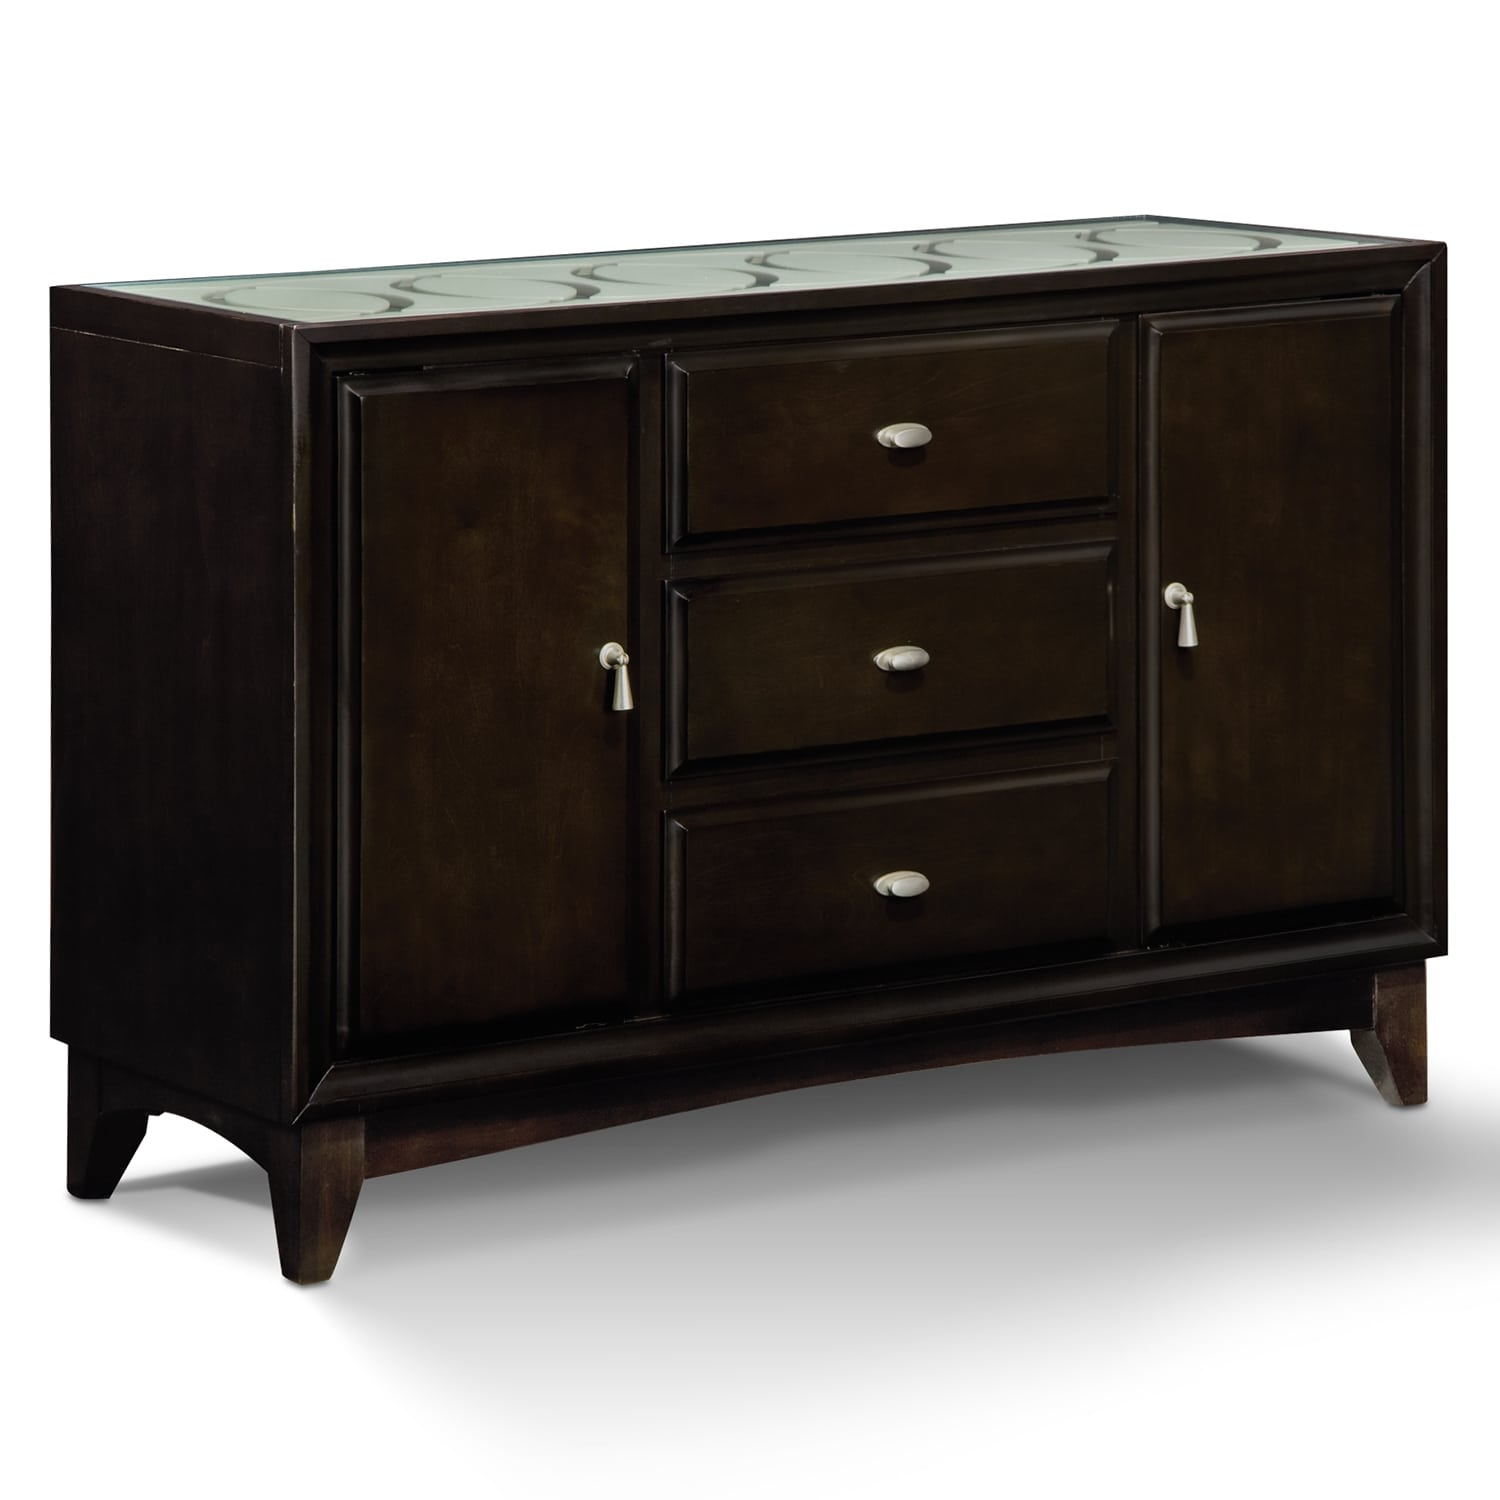 Cosmo sideboard merlot american signature furniture for Dining room buffet